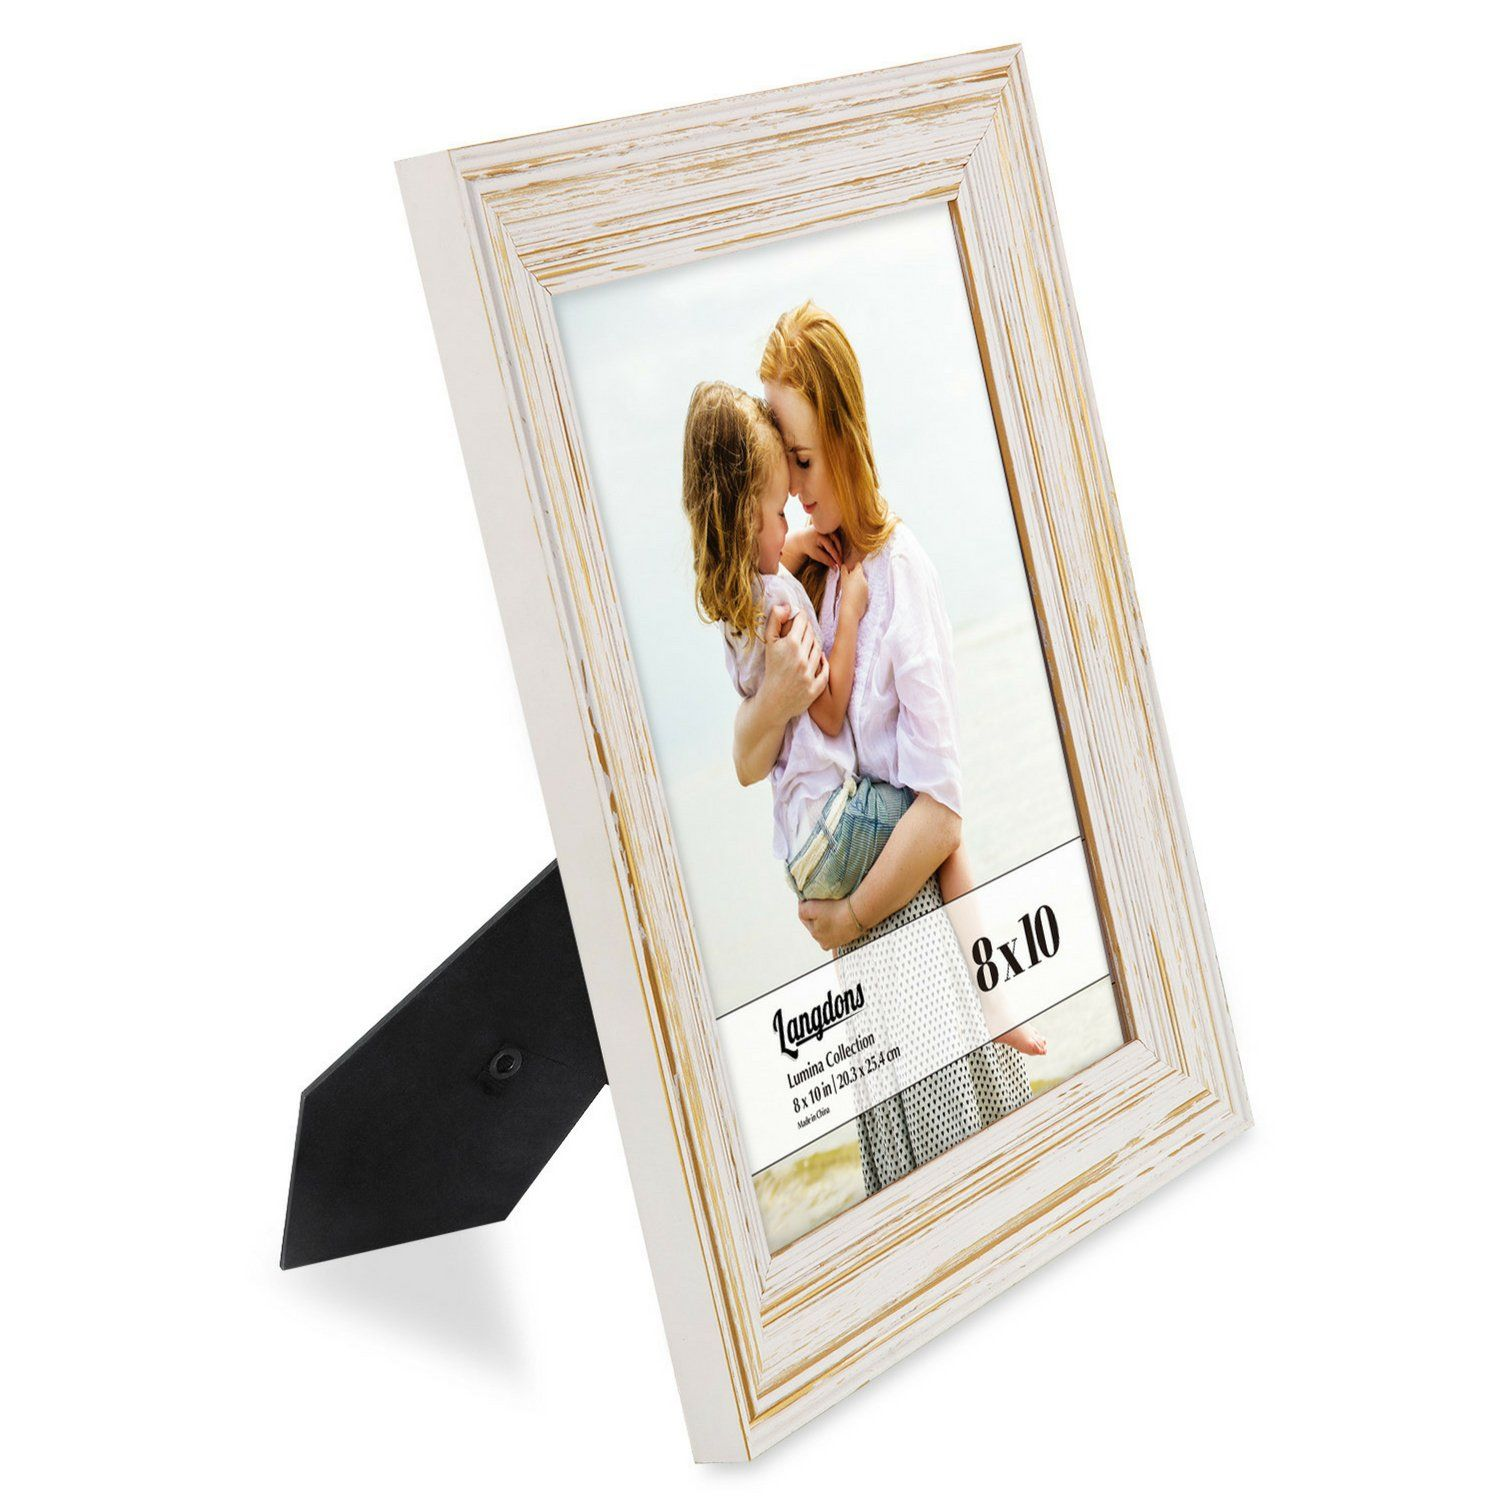 Langdons 8x10 Picture Frame Set 6pack Weathered White Solid Wood Photo Frames 8x10 Wall Hanging Or Tab Wooden Photo Frames Wood Picture Frames Wood Photo Frame